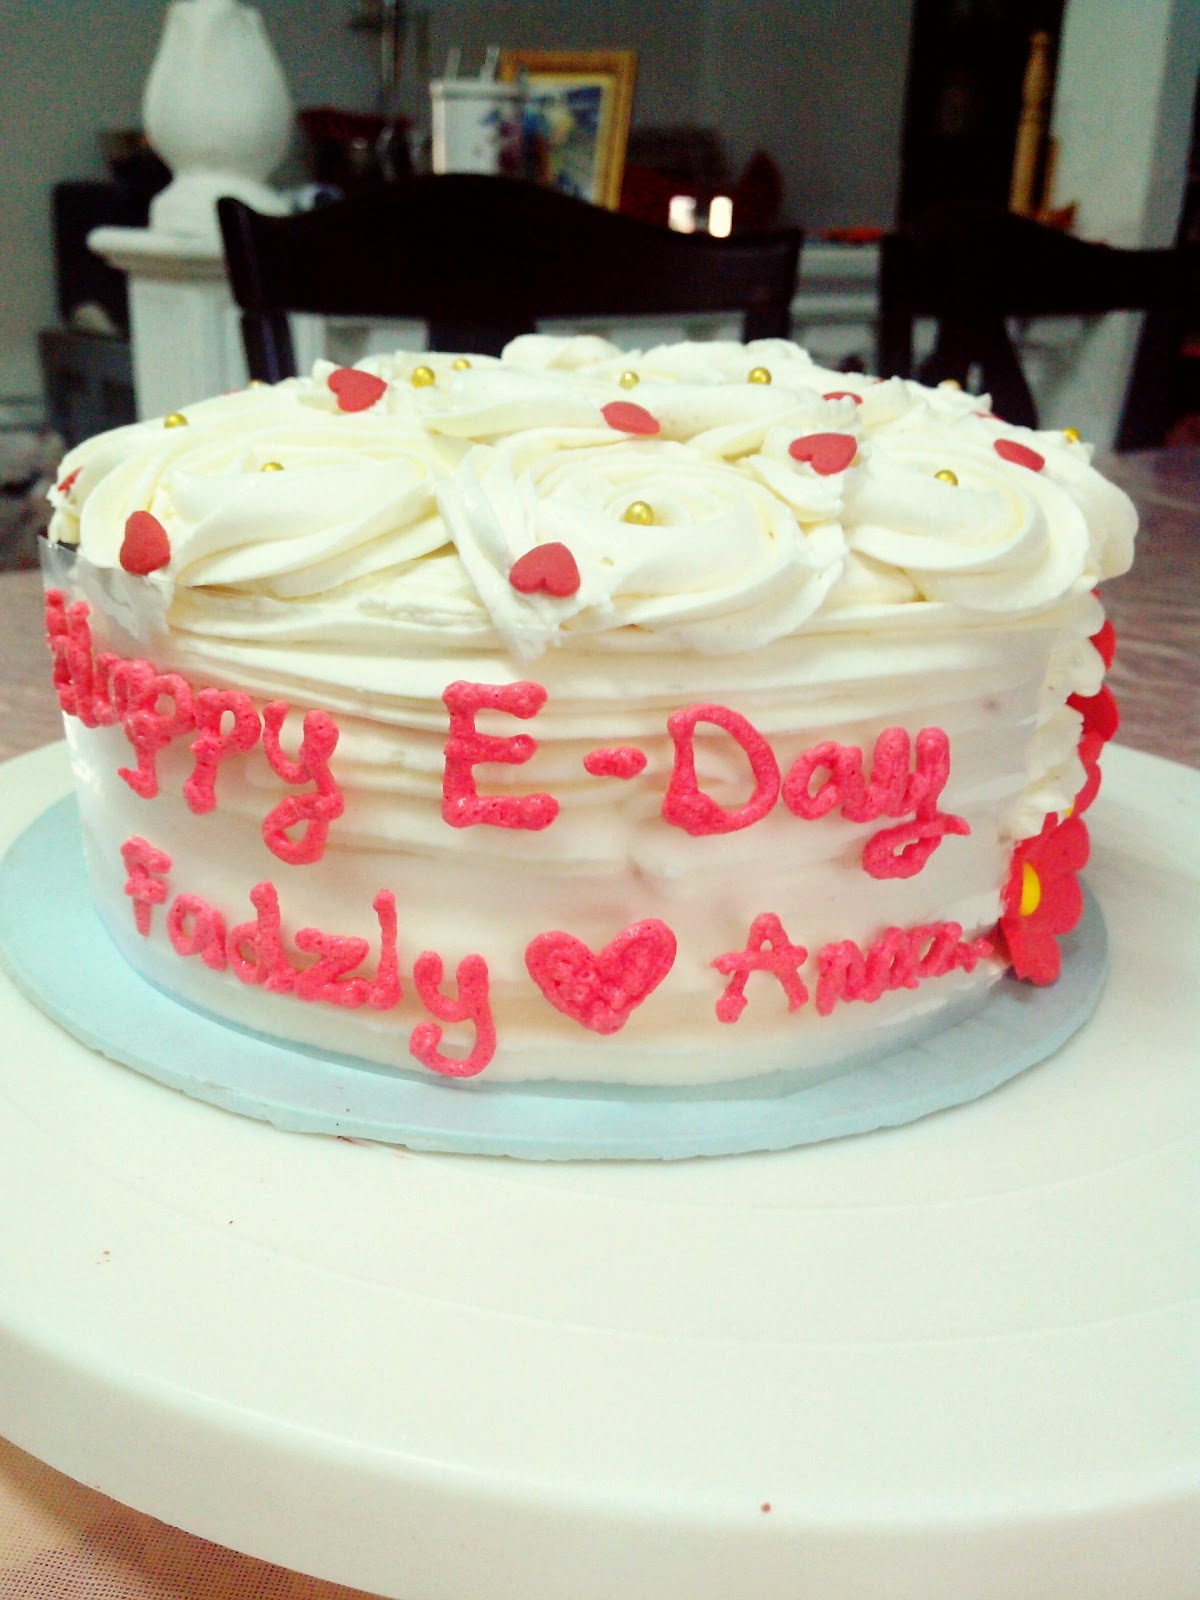 Red Velvet Cake For E Day Kek Red Velvet Bertunang Kek